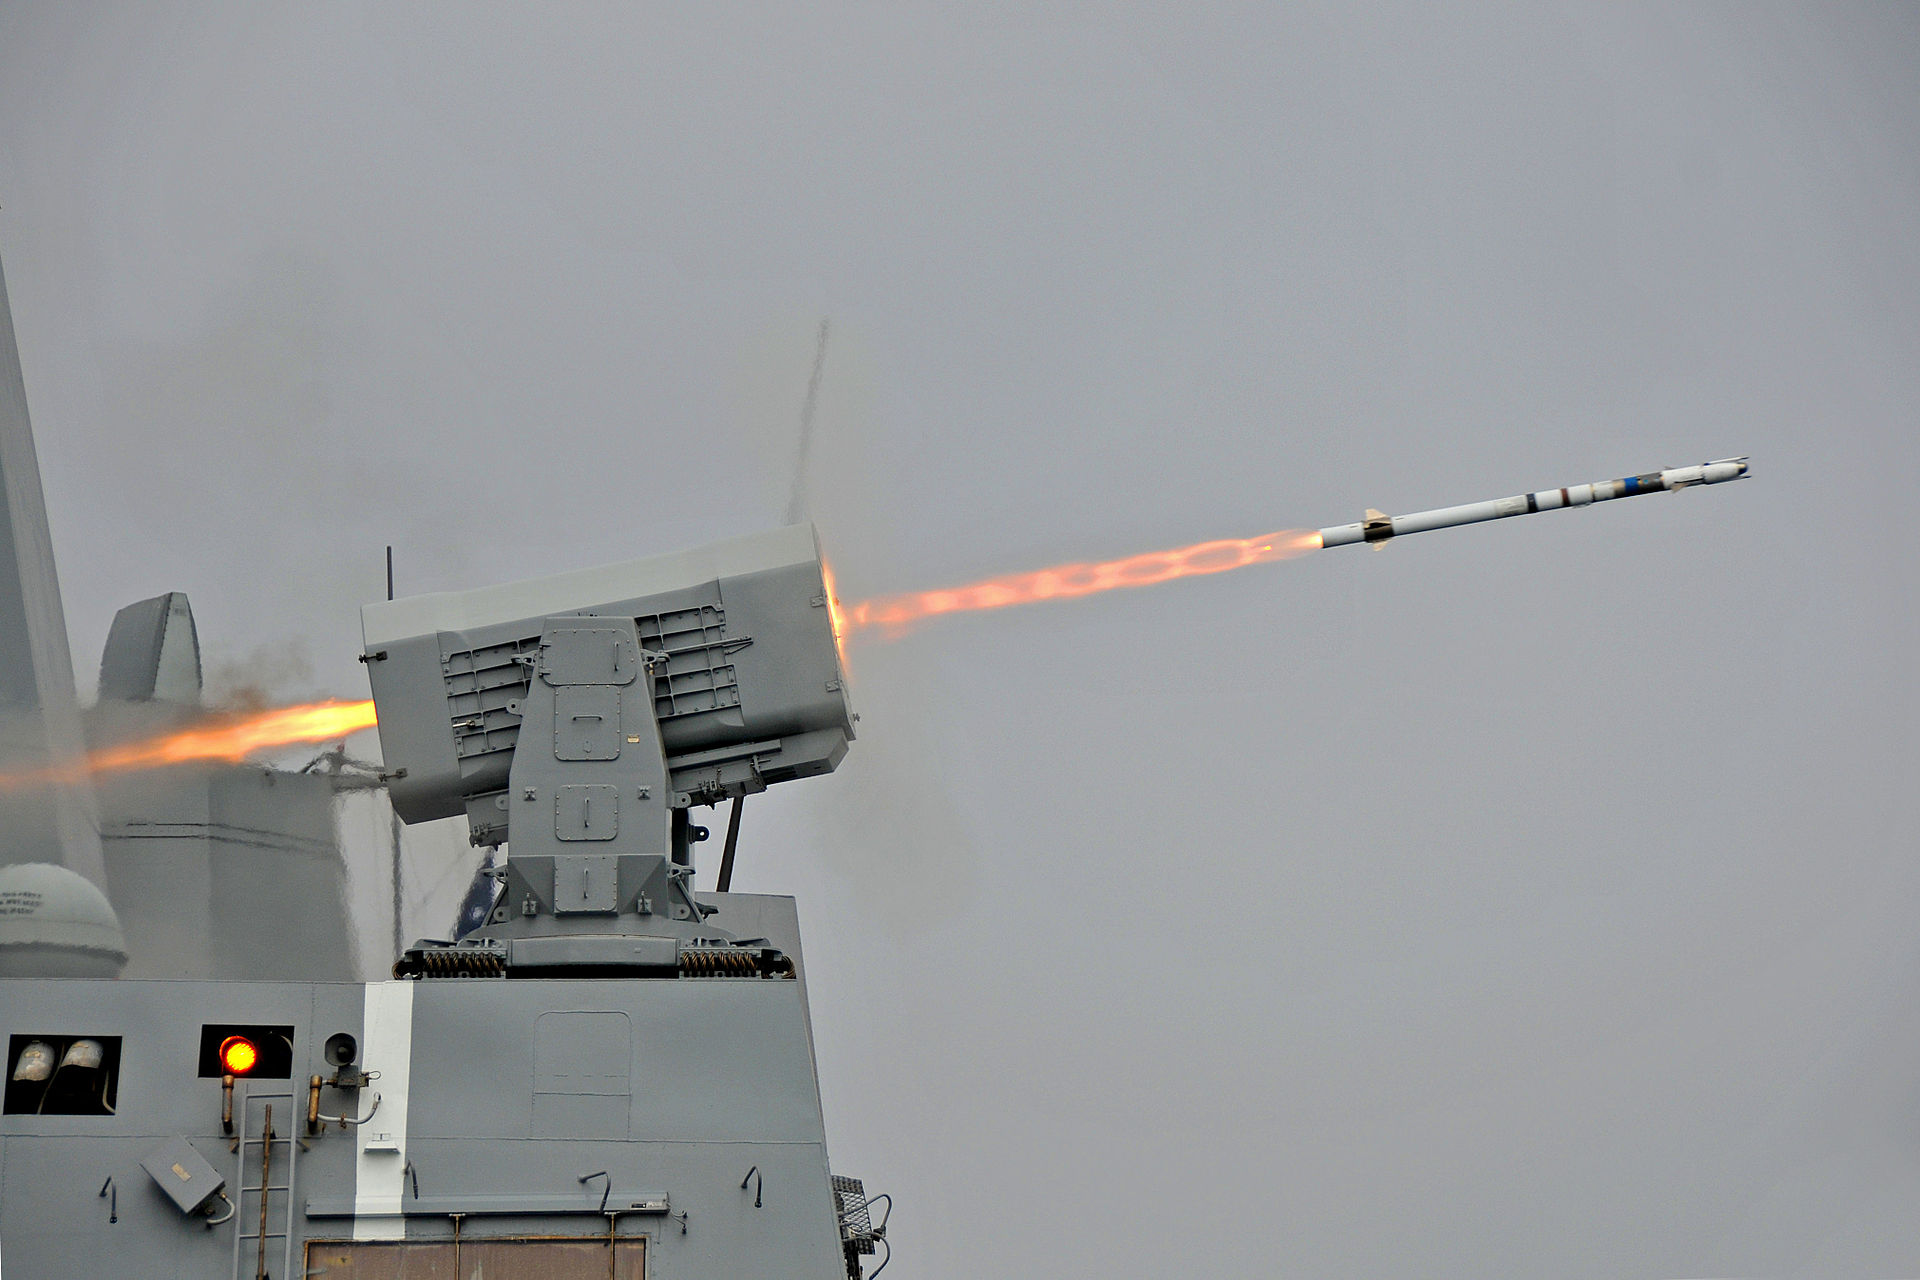 Get Ready Russia And China The U S Navy Wants To Make